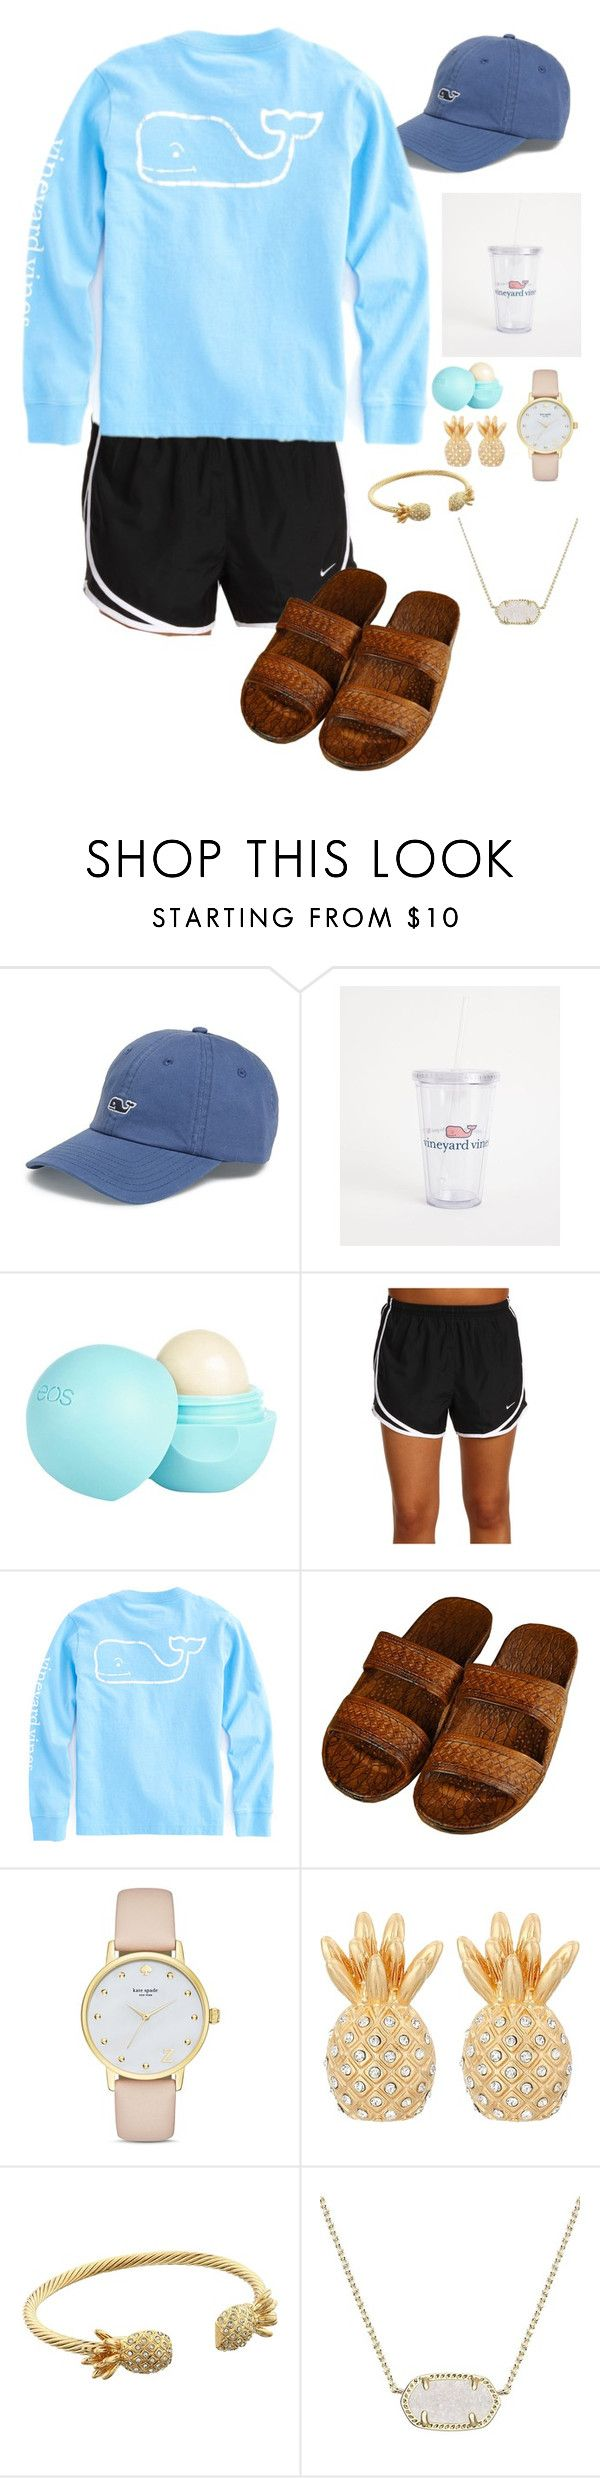 Happy Friday!//Emma by preppy-girls-with-passion ❤ liked on Polyvore featuring Vineyard Vines, River Island, NIKE, Kate Spade, Lilly Pulitzer and Kendra Scott